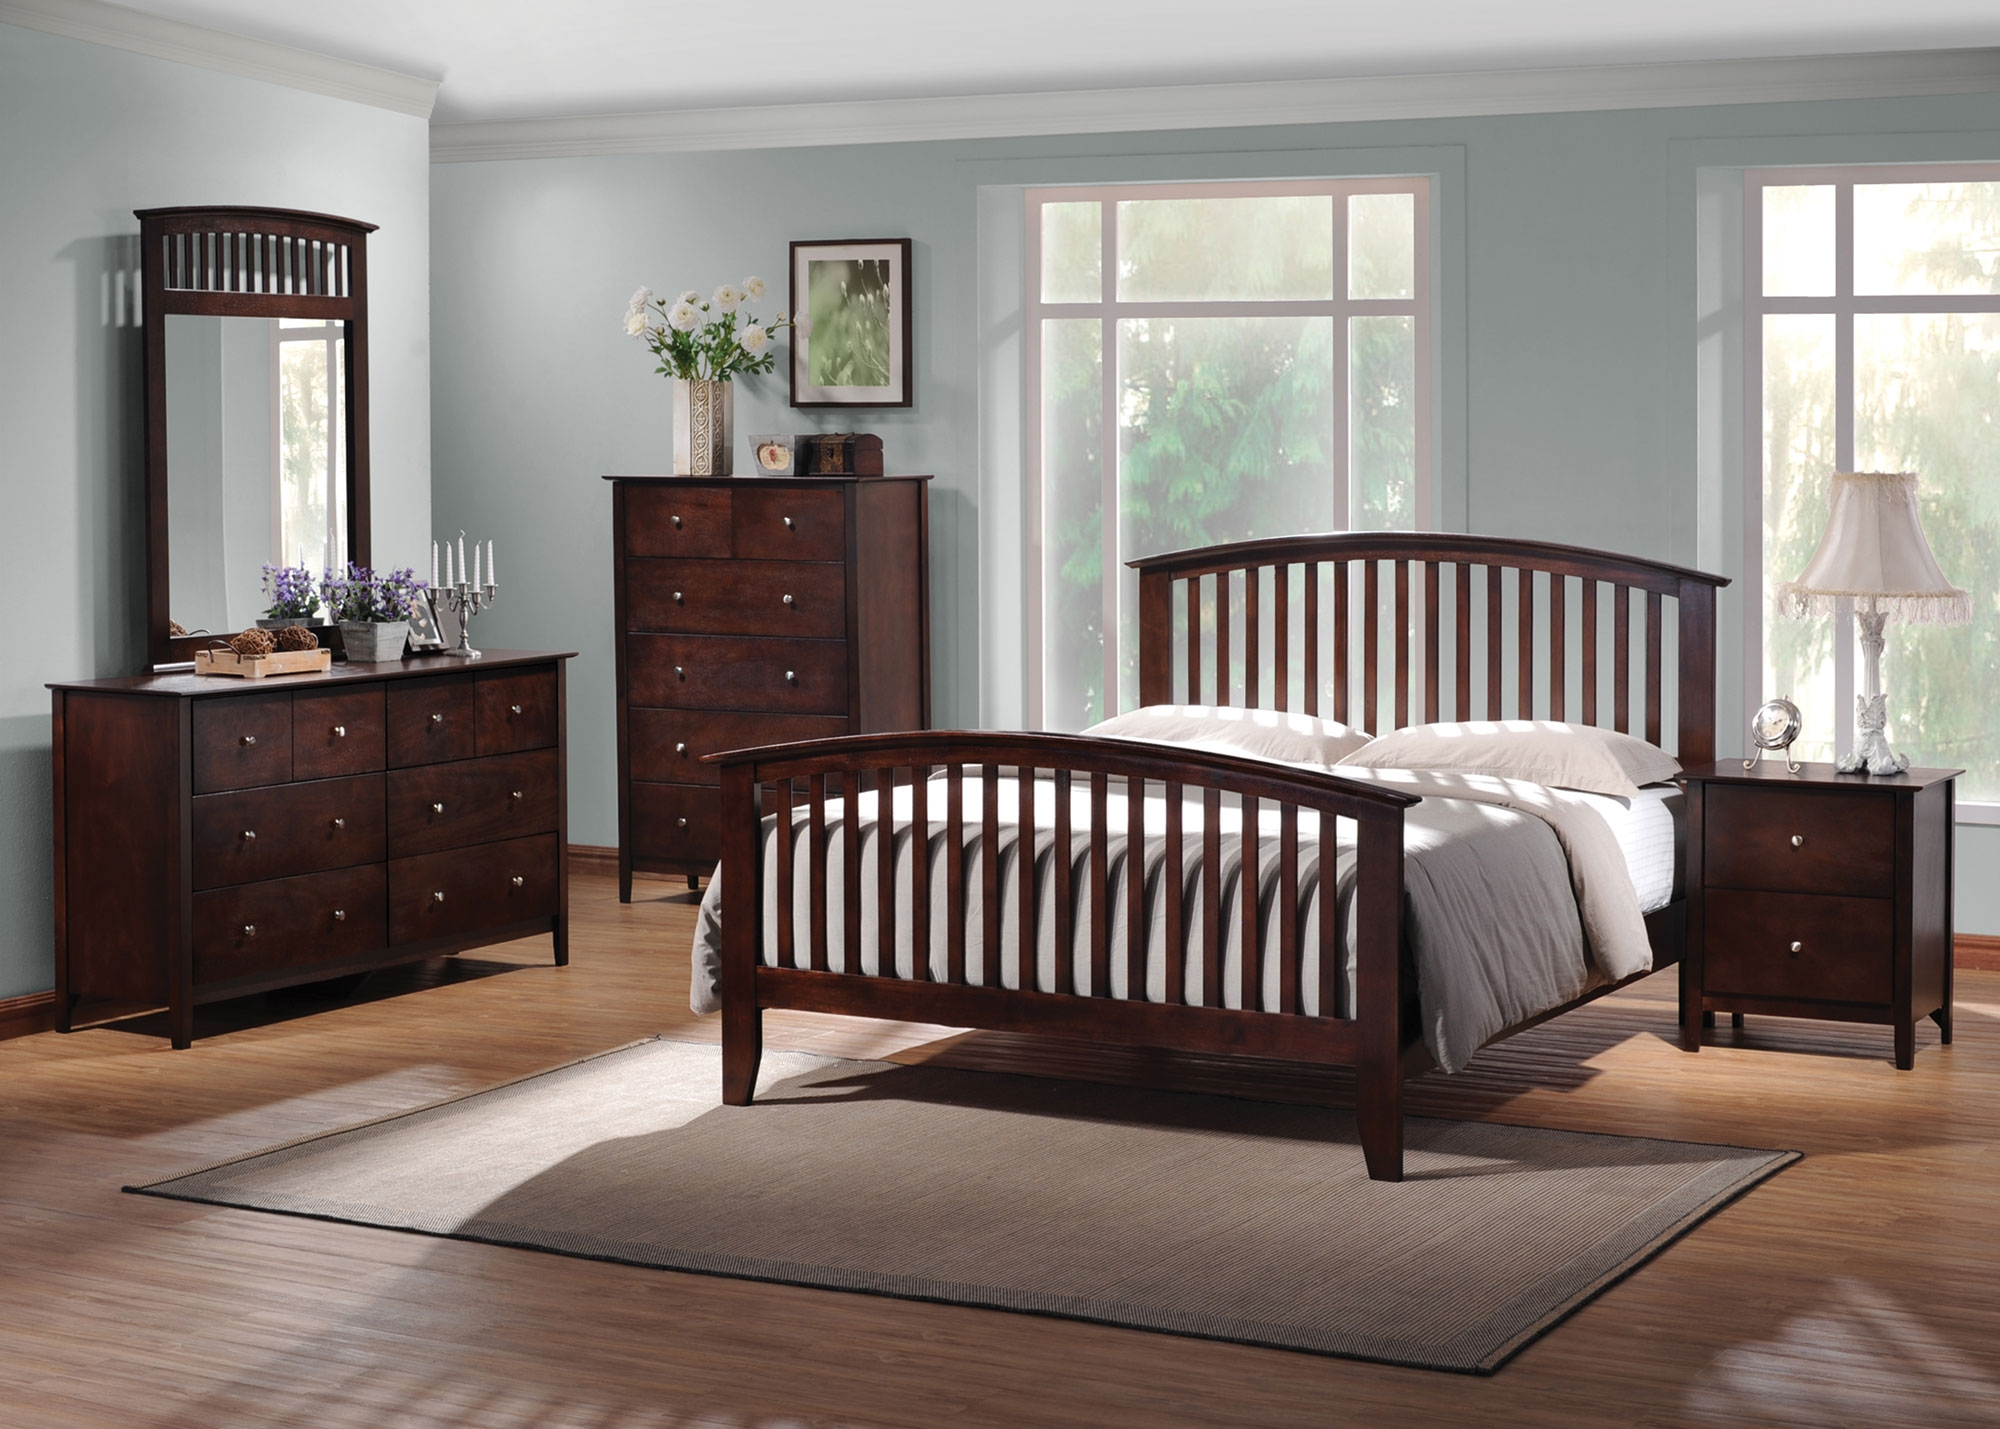 Coaster Tia Arched Queen 5pc Bedroom Set Dallas TX Bedroom Group